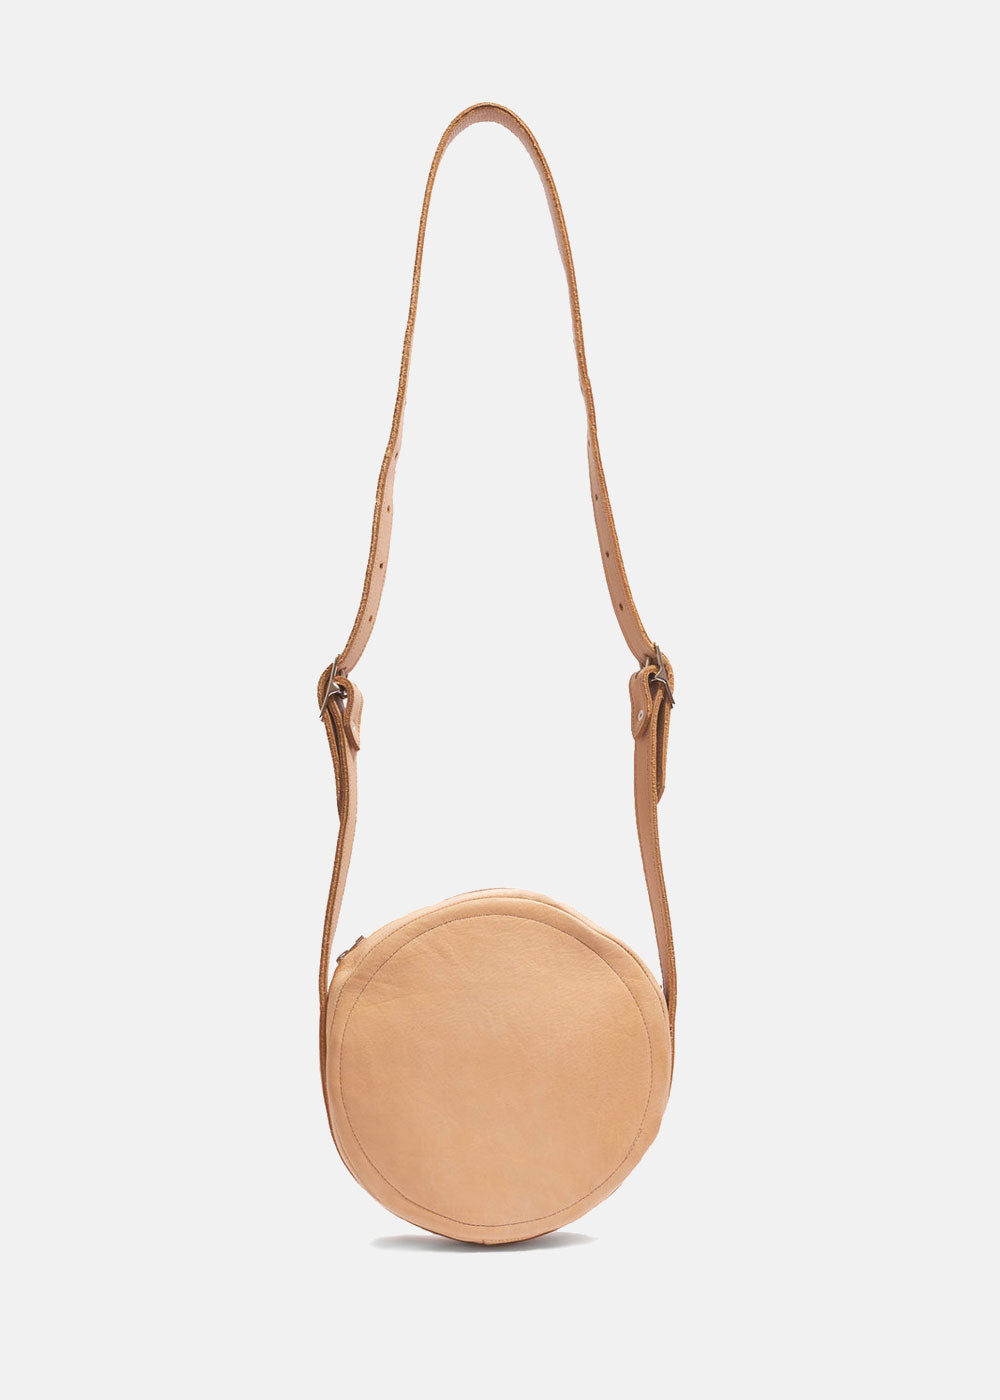 Sonya Lee Nude East Bag — New Classics Studios